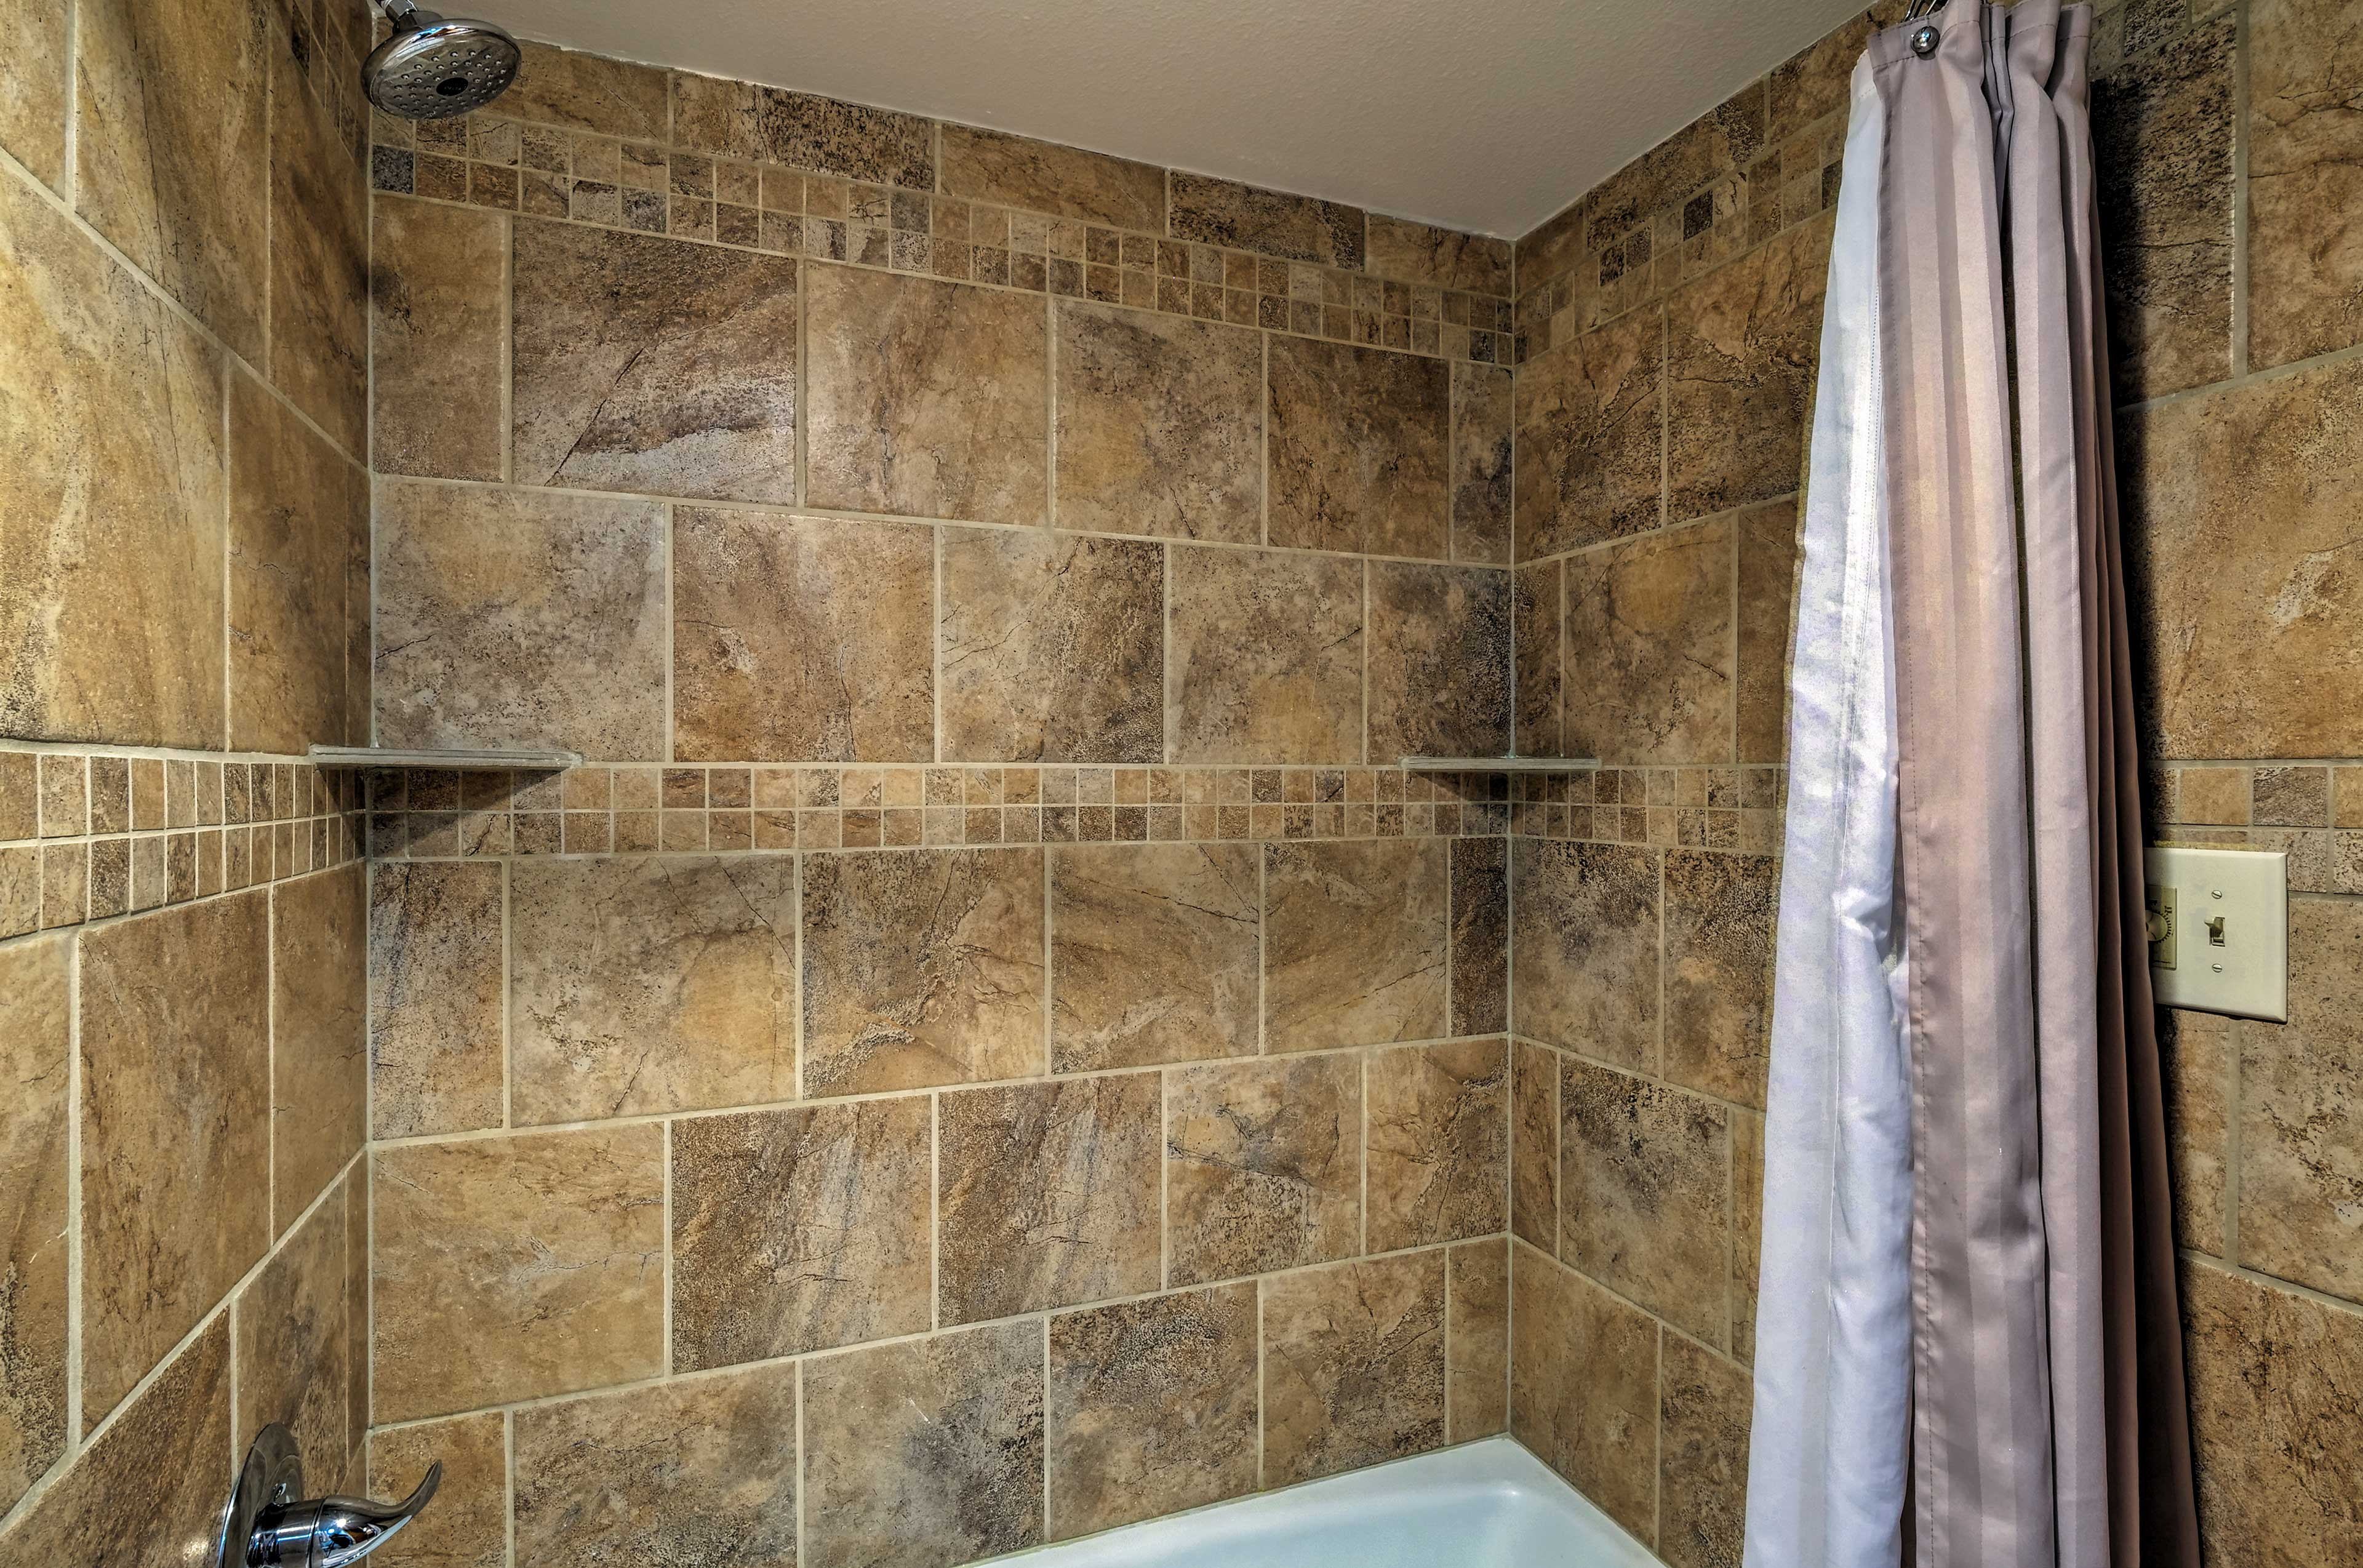 The bathroom is complete with a shower/tub combo.